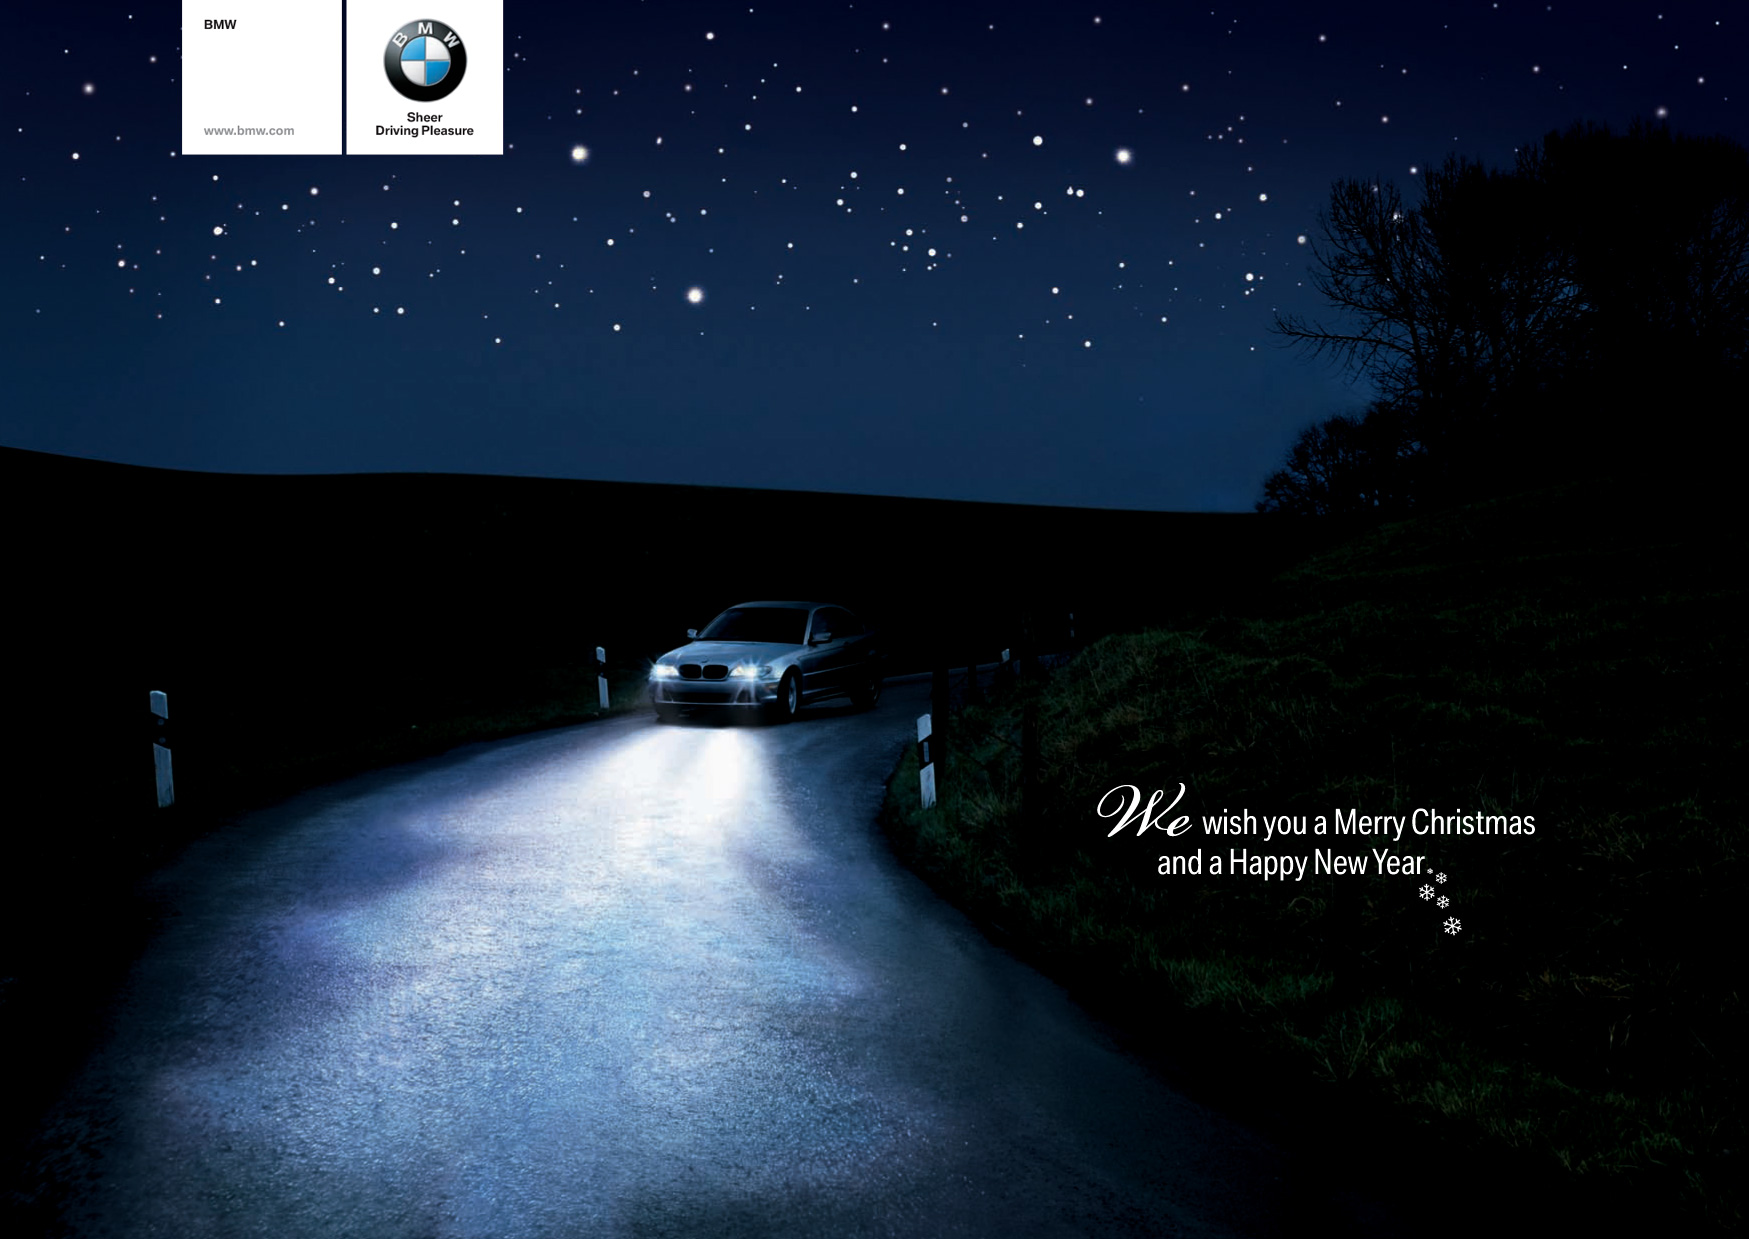 Christmas Greetings From Bmw